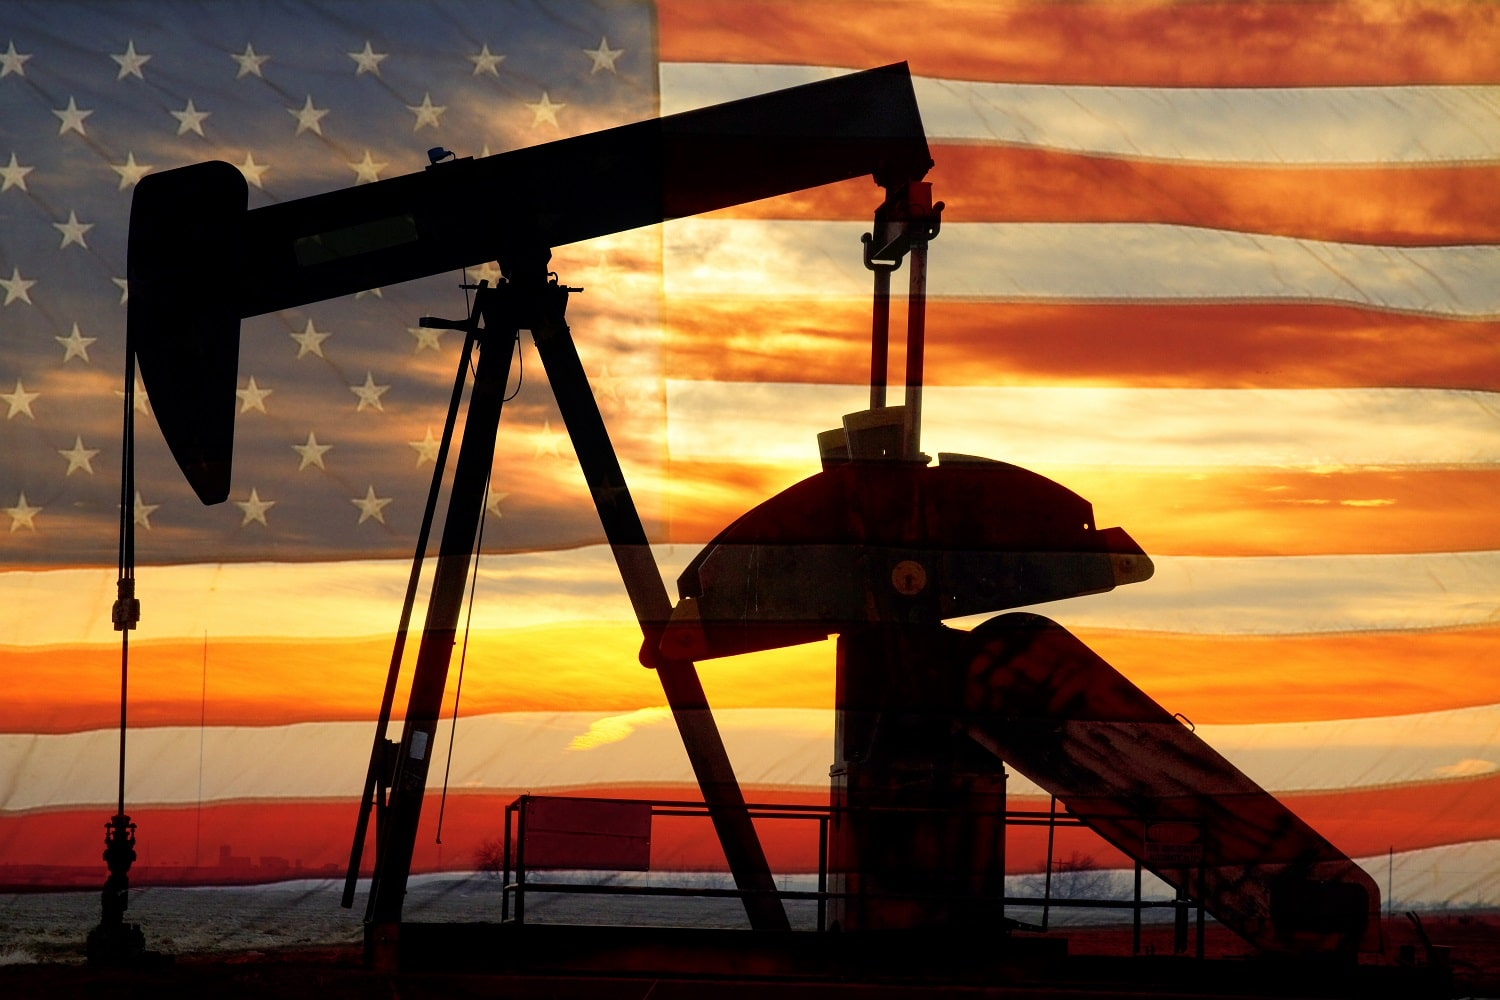 American oil exports on the rise